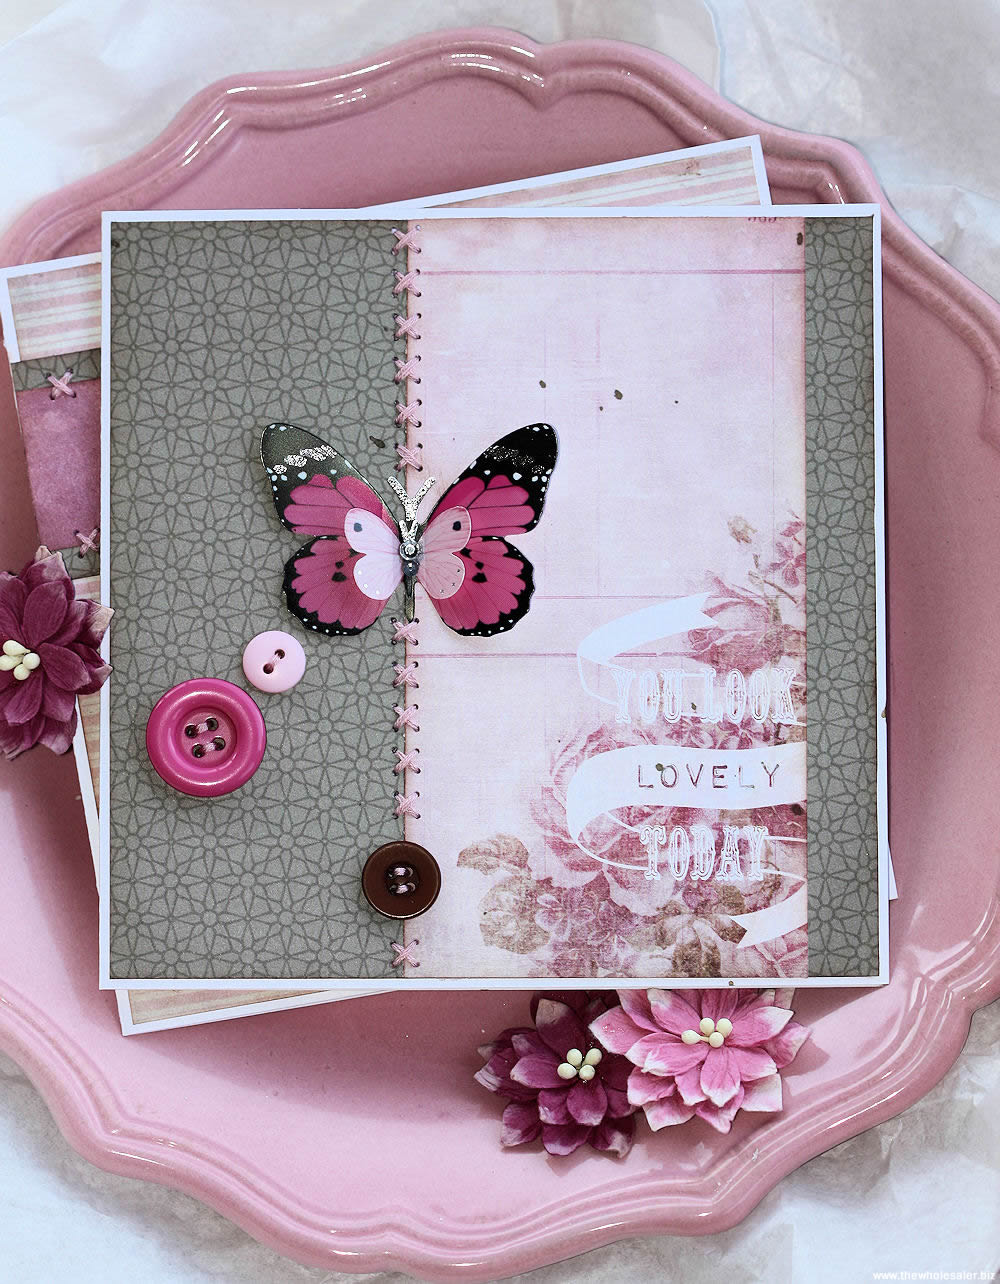 Women's Day - You Look Lovely Card